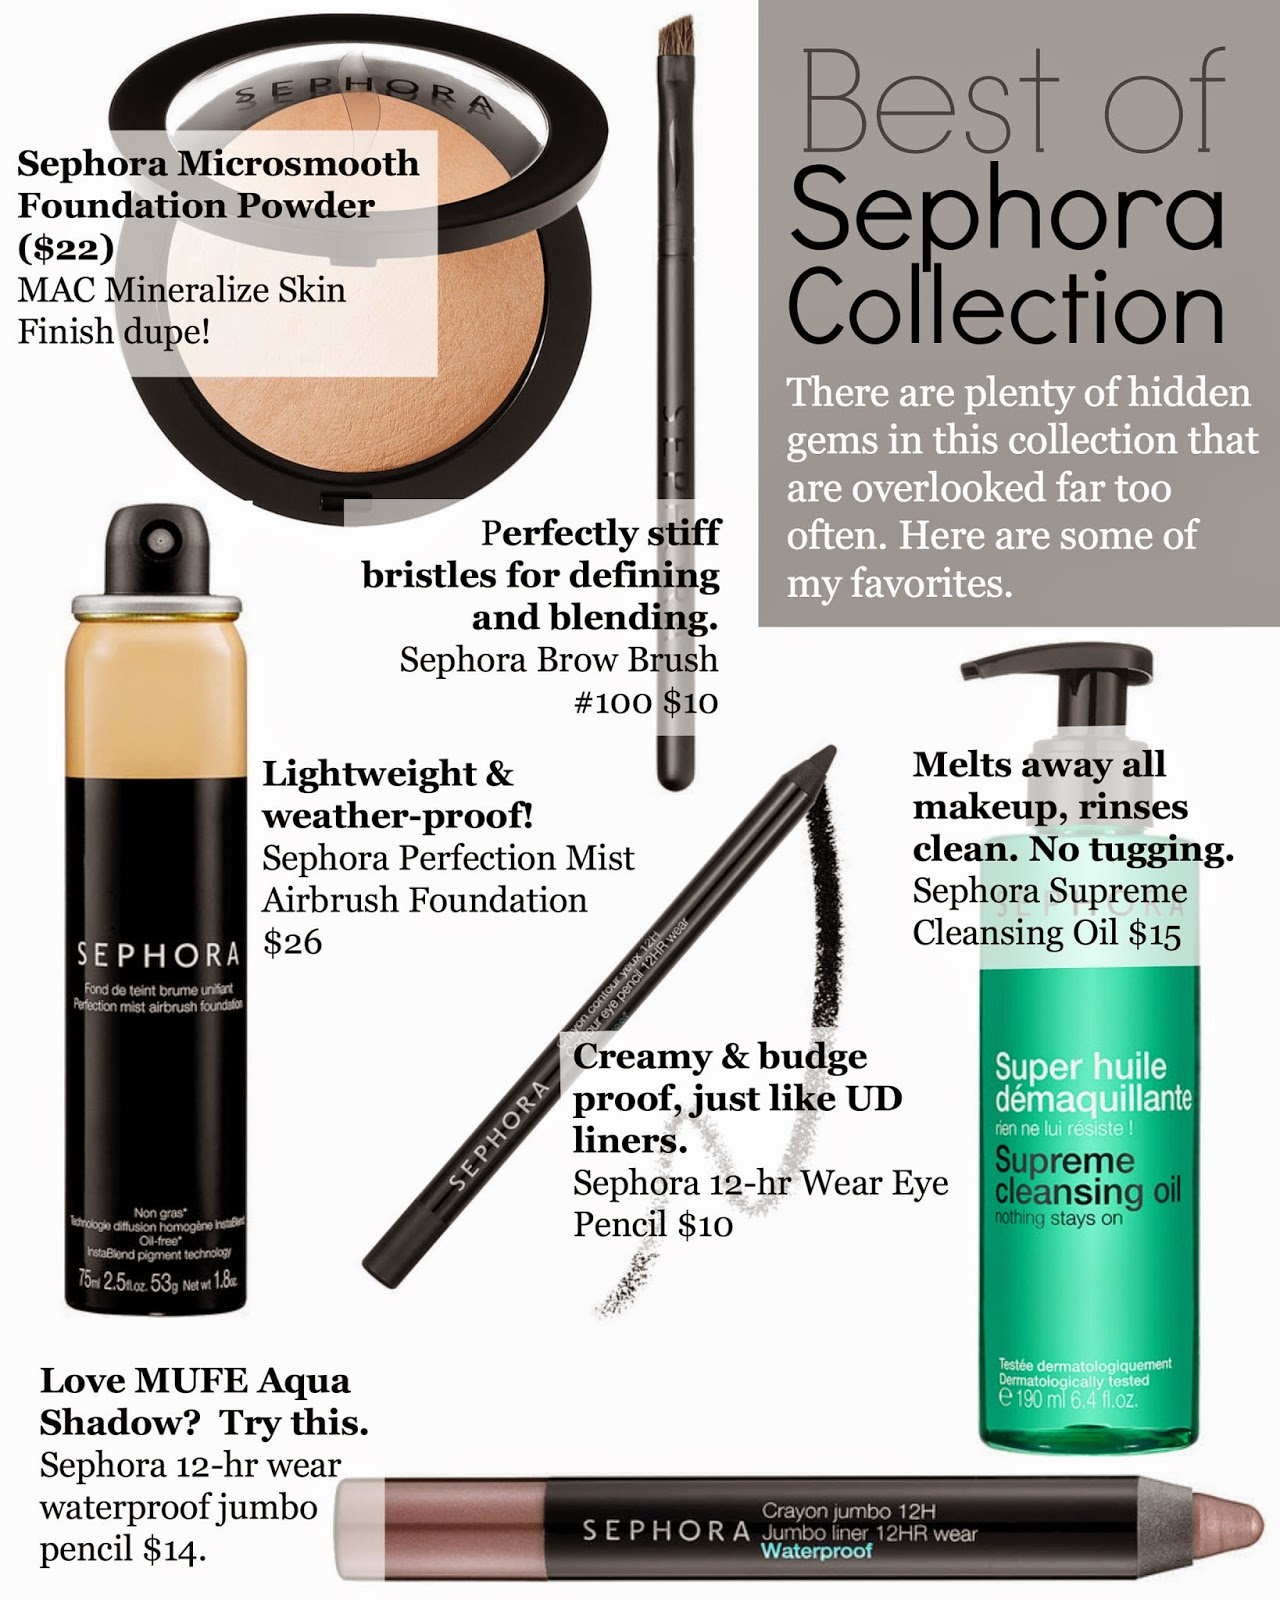 Sephora brand best of, sephora brand favorite products